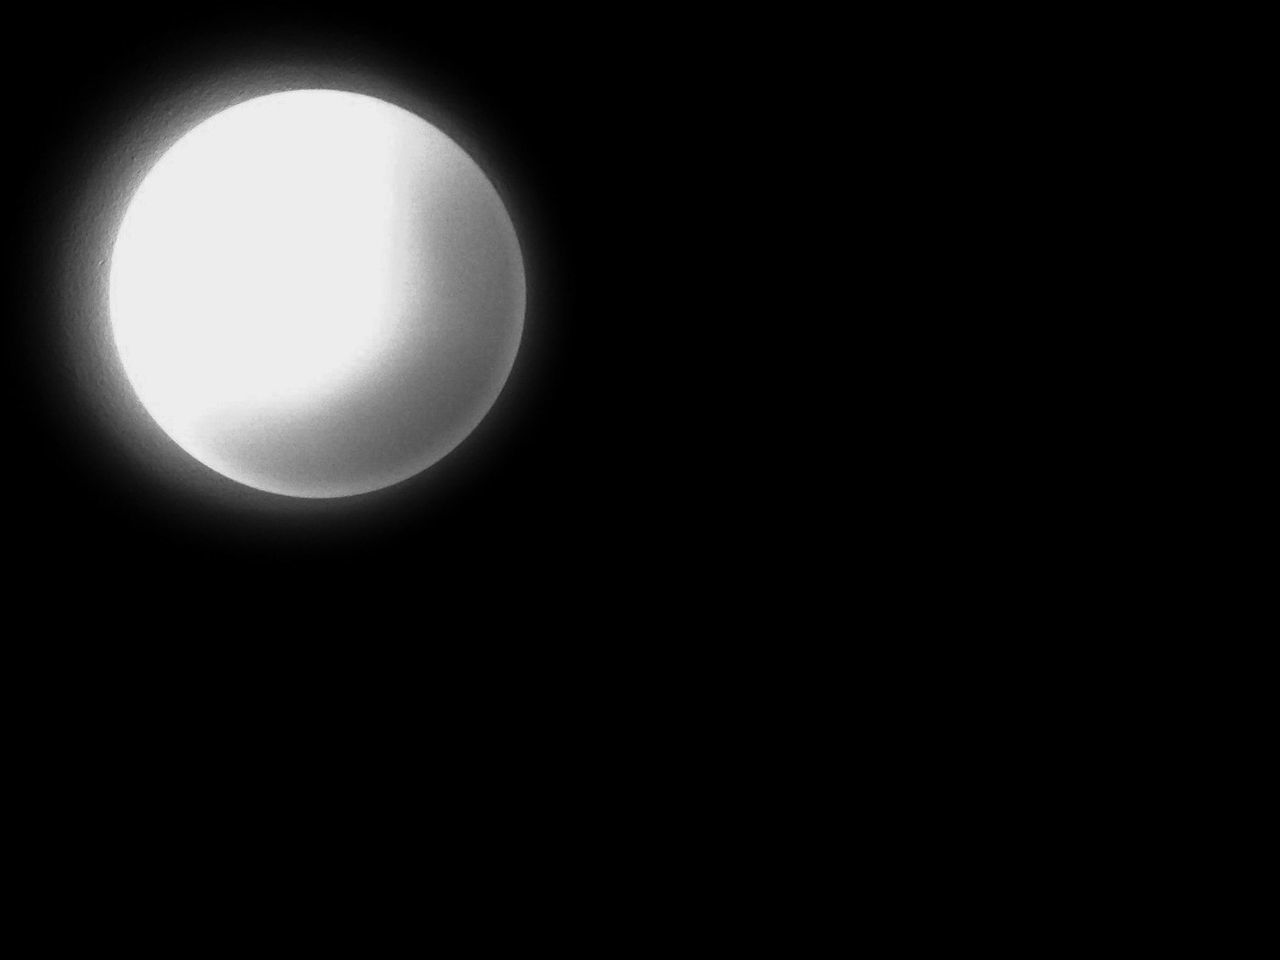 Cheap moon Light And Shadow Night Lights Minimalism Dark Black And White